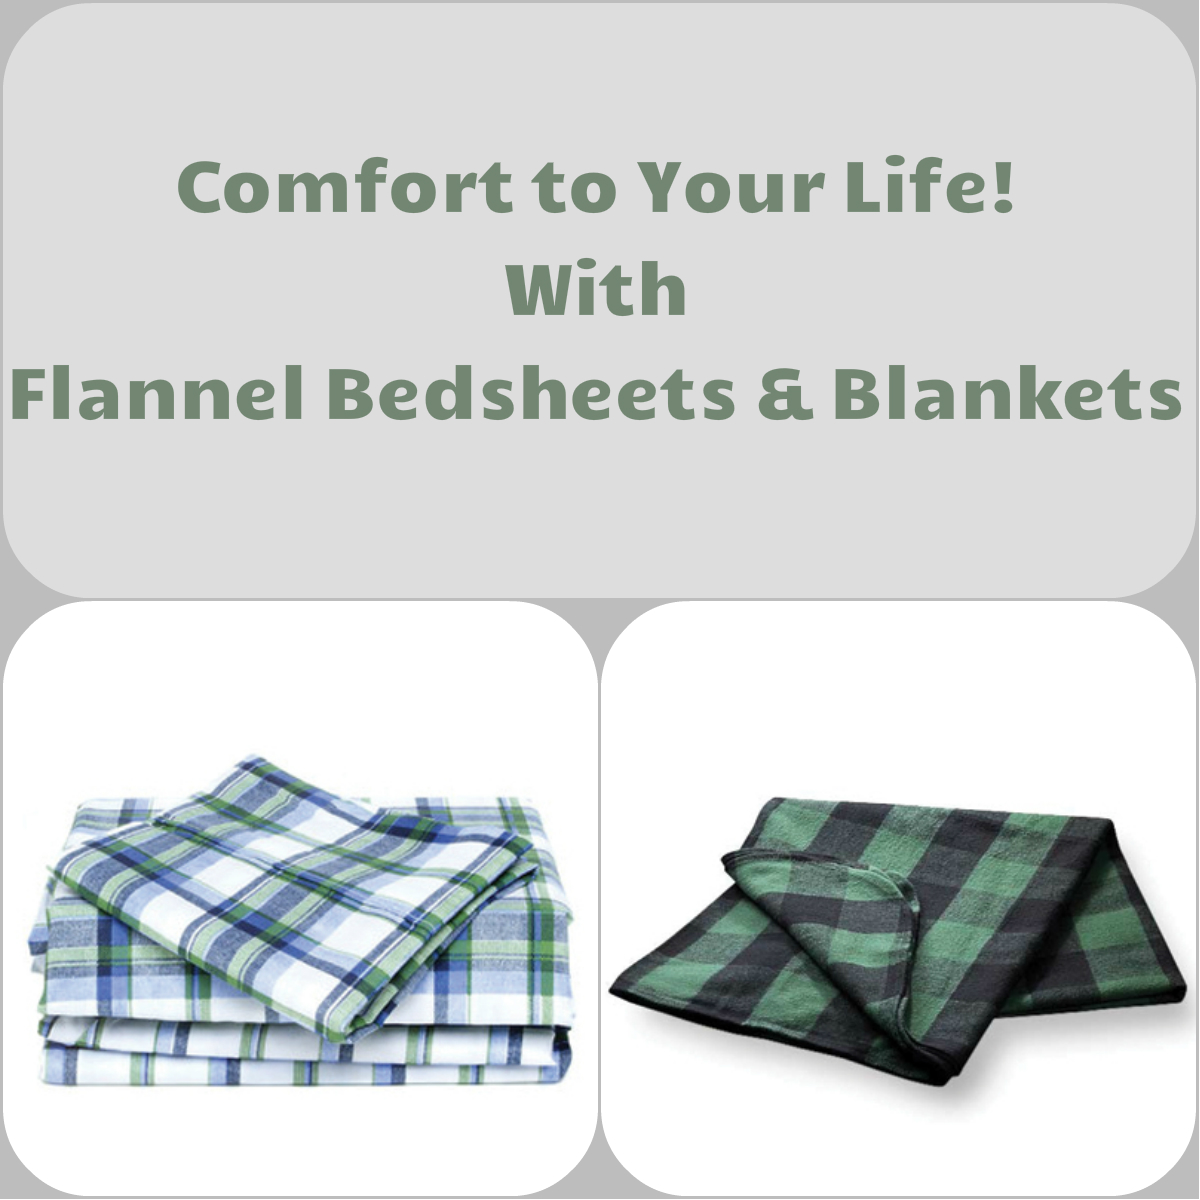 The Flannel Bedsheets, Blankets or Dresses: Add Comfort to Your Life